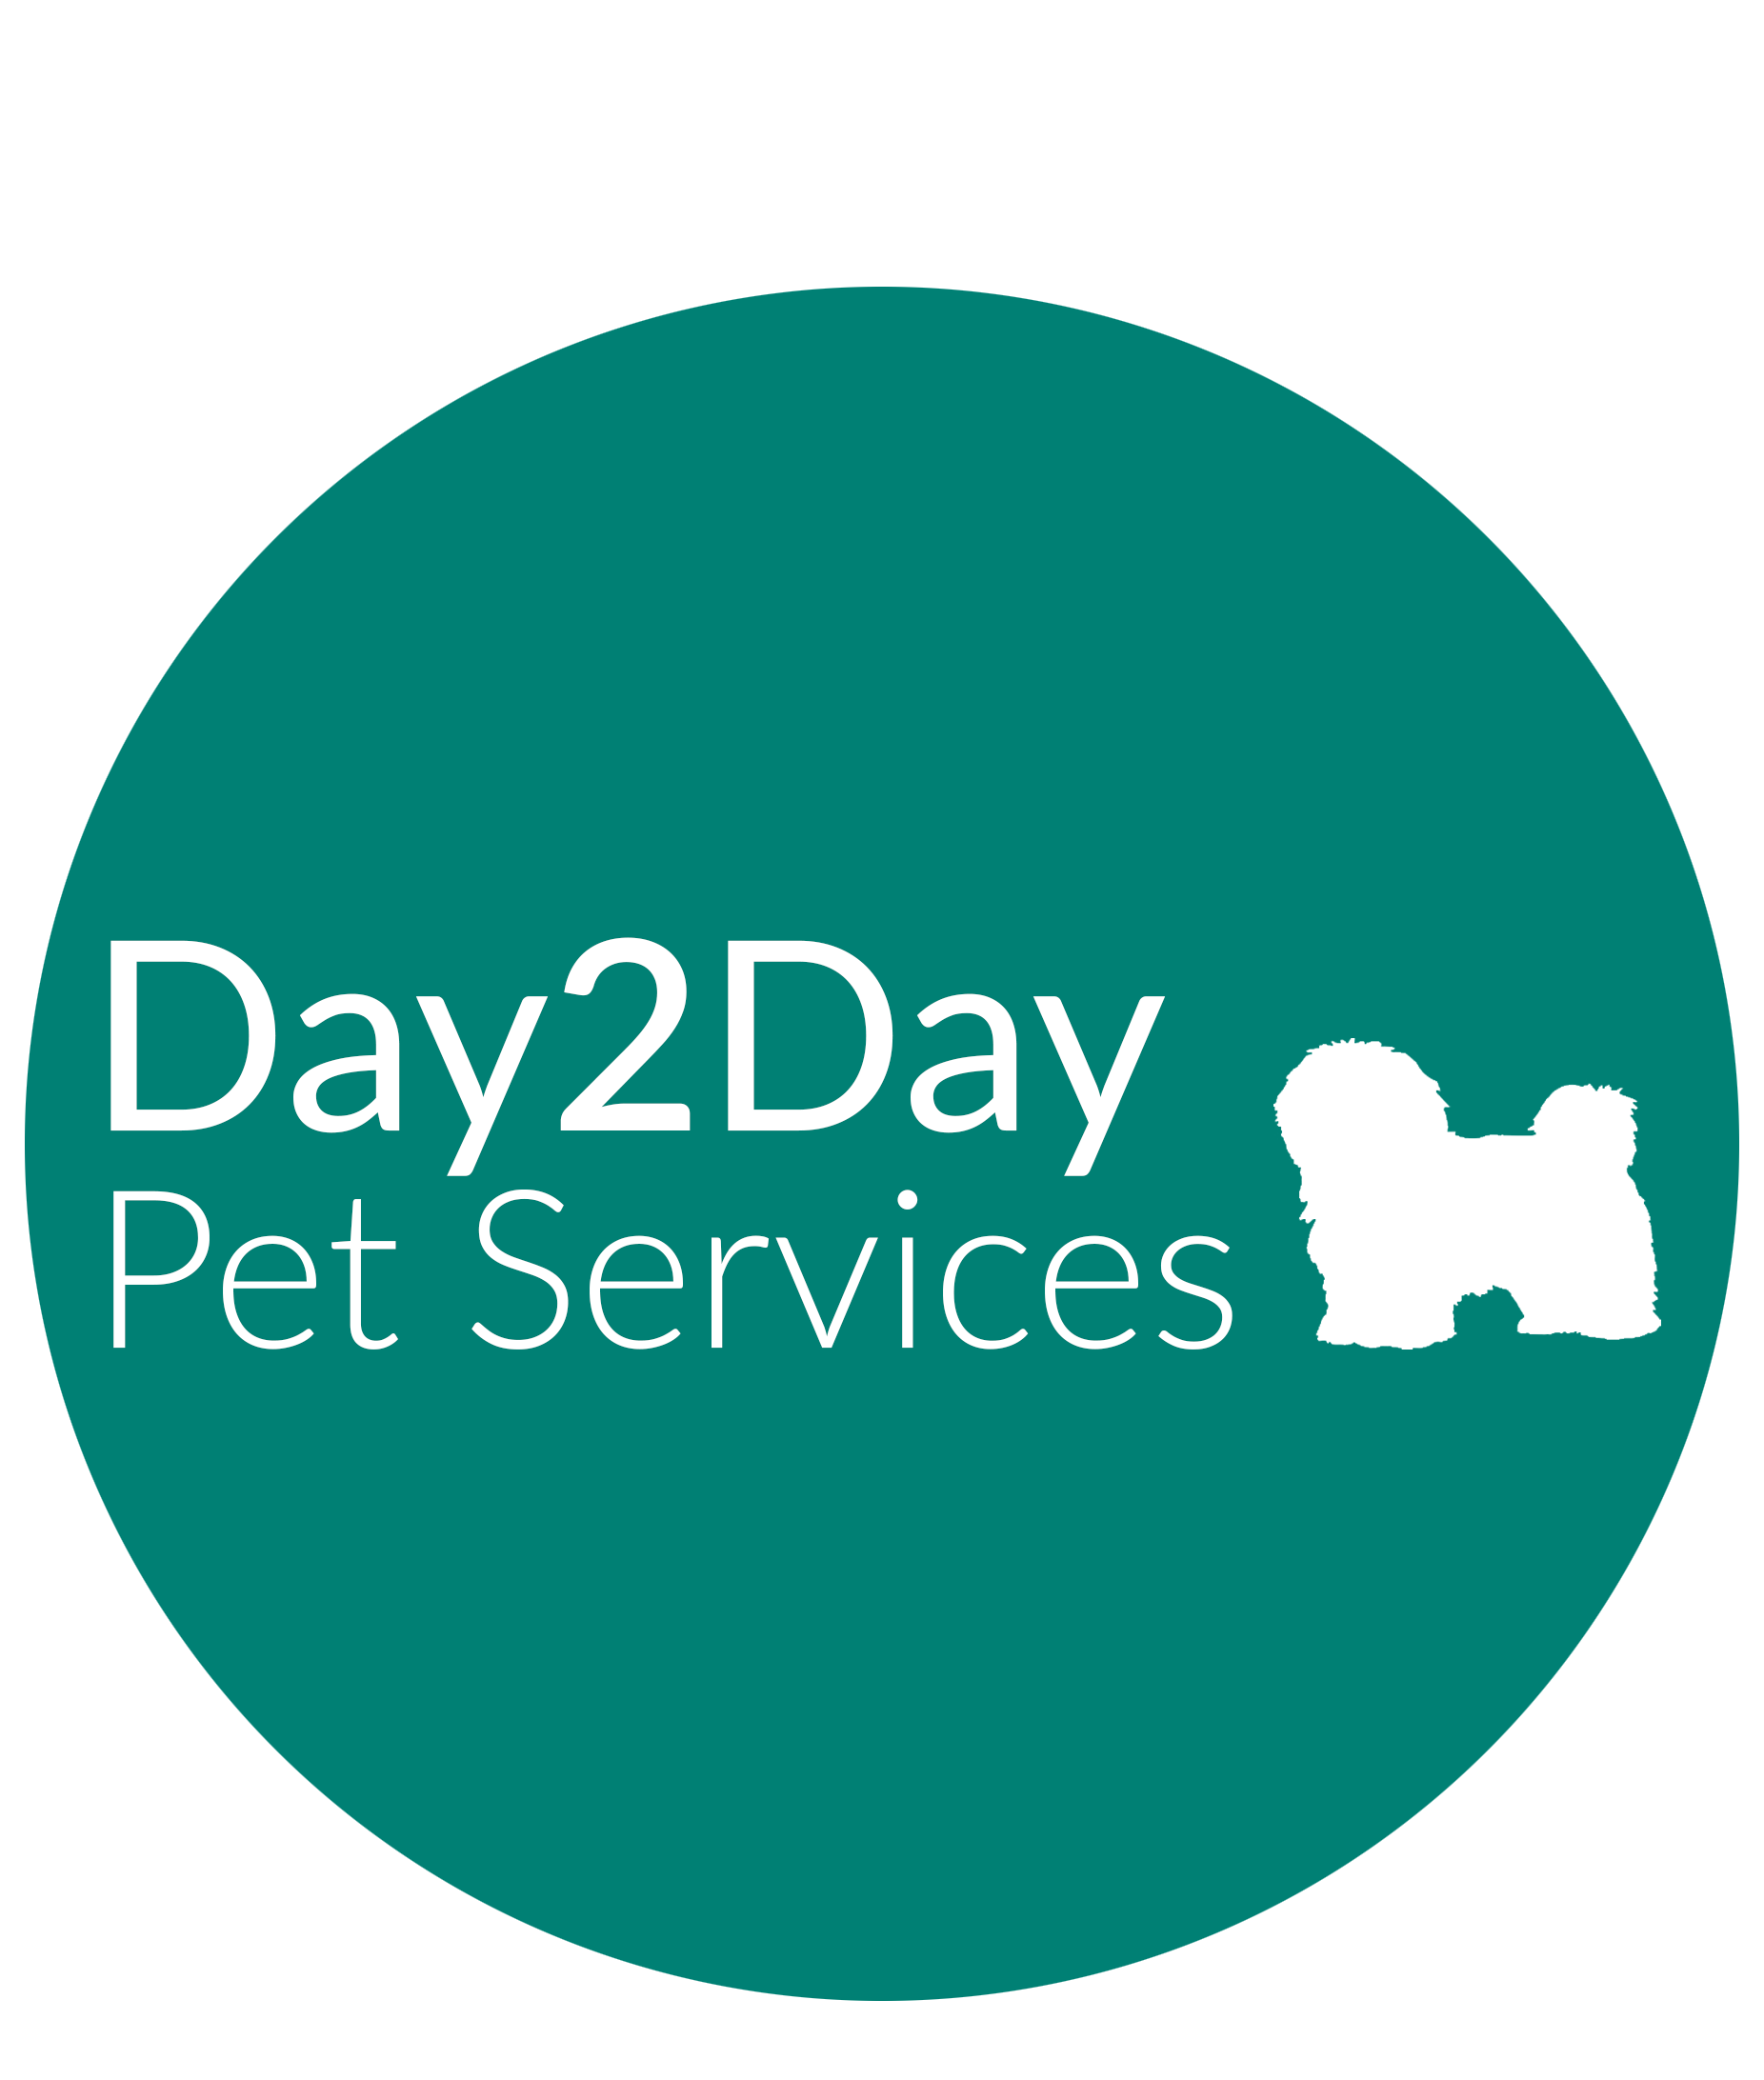 Day2Day Pet Services